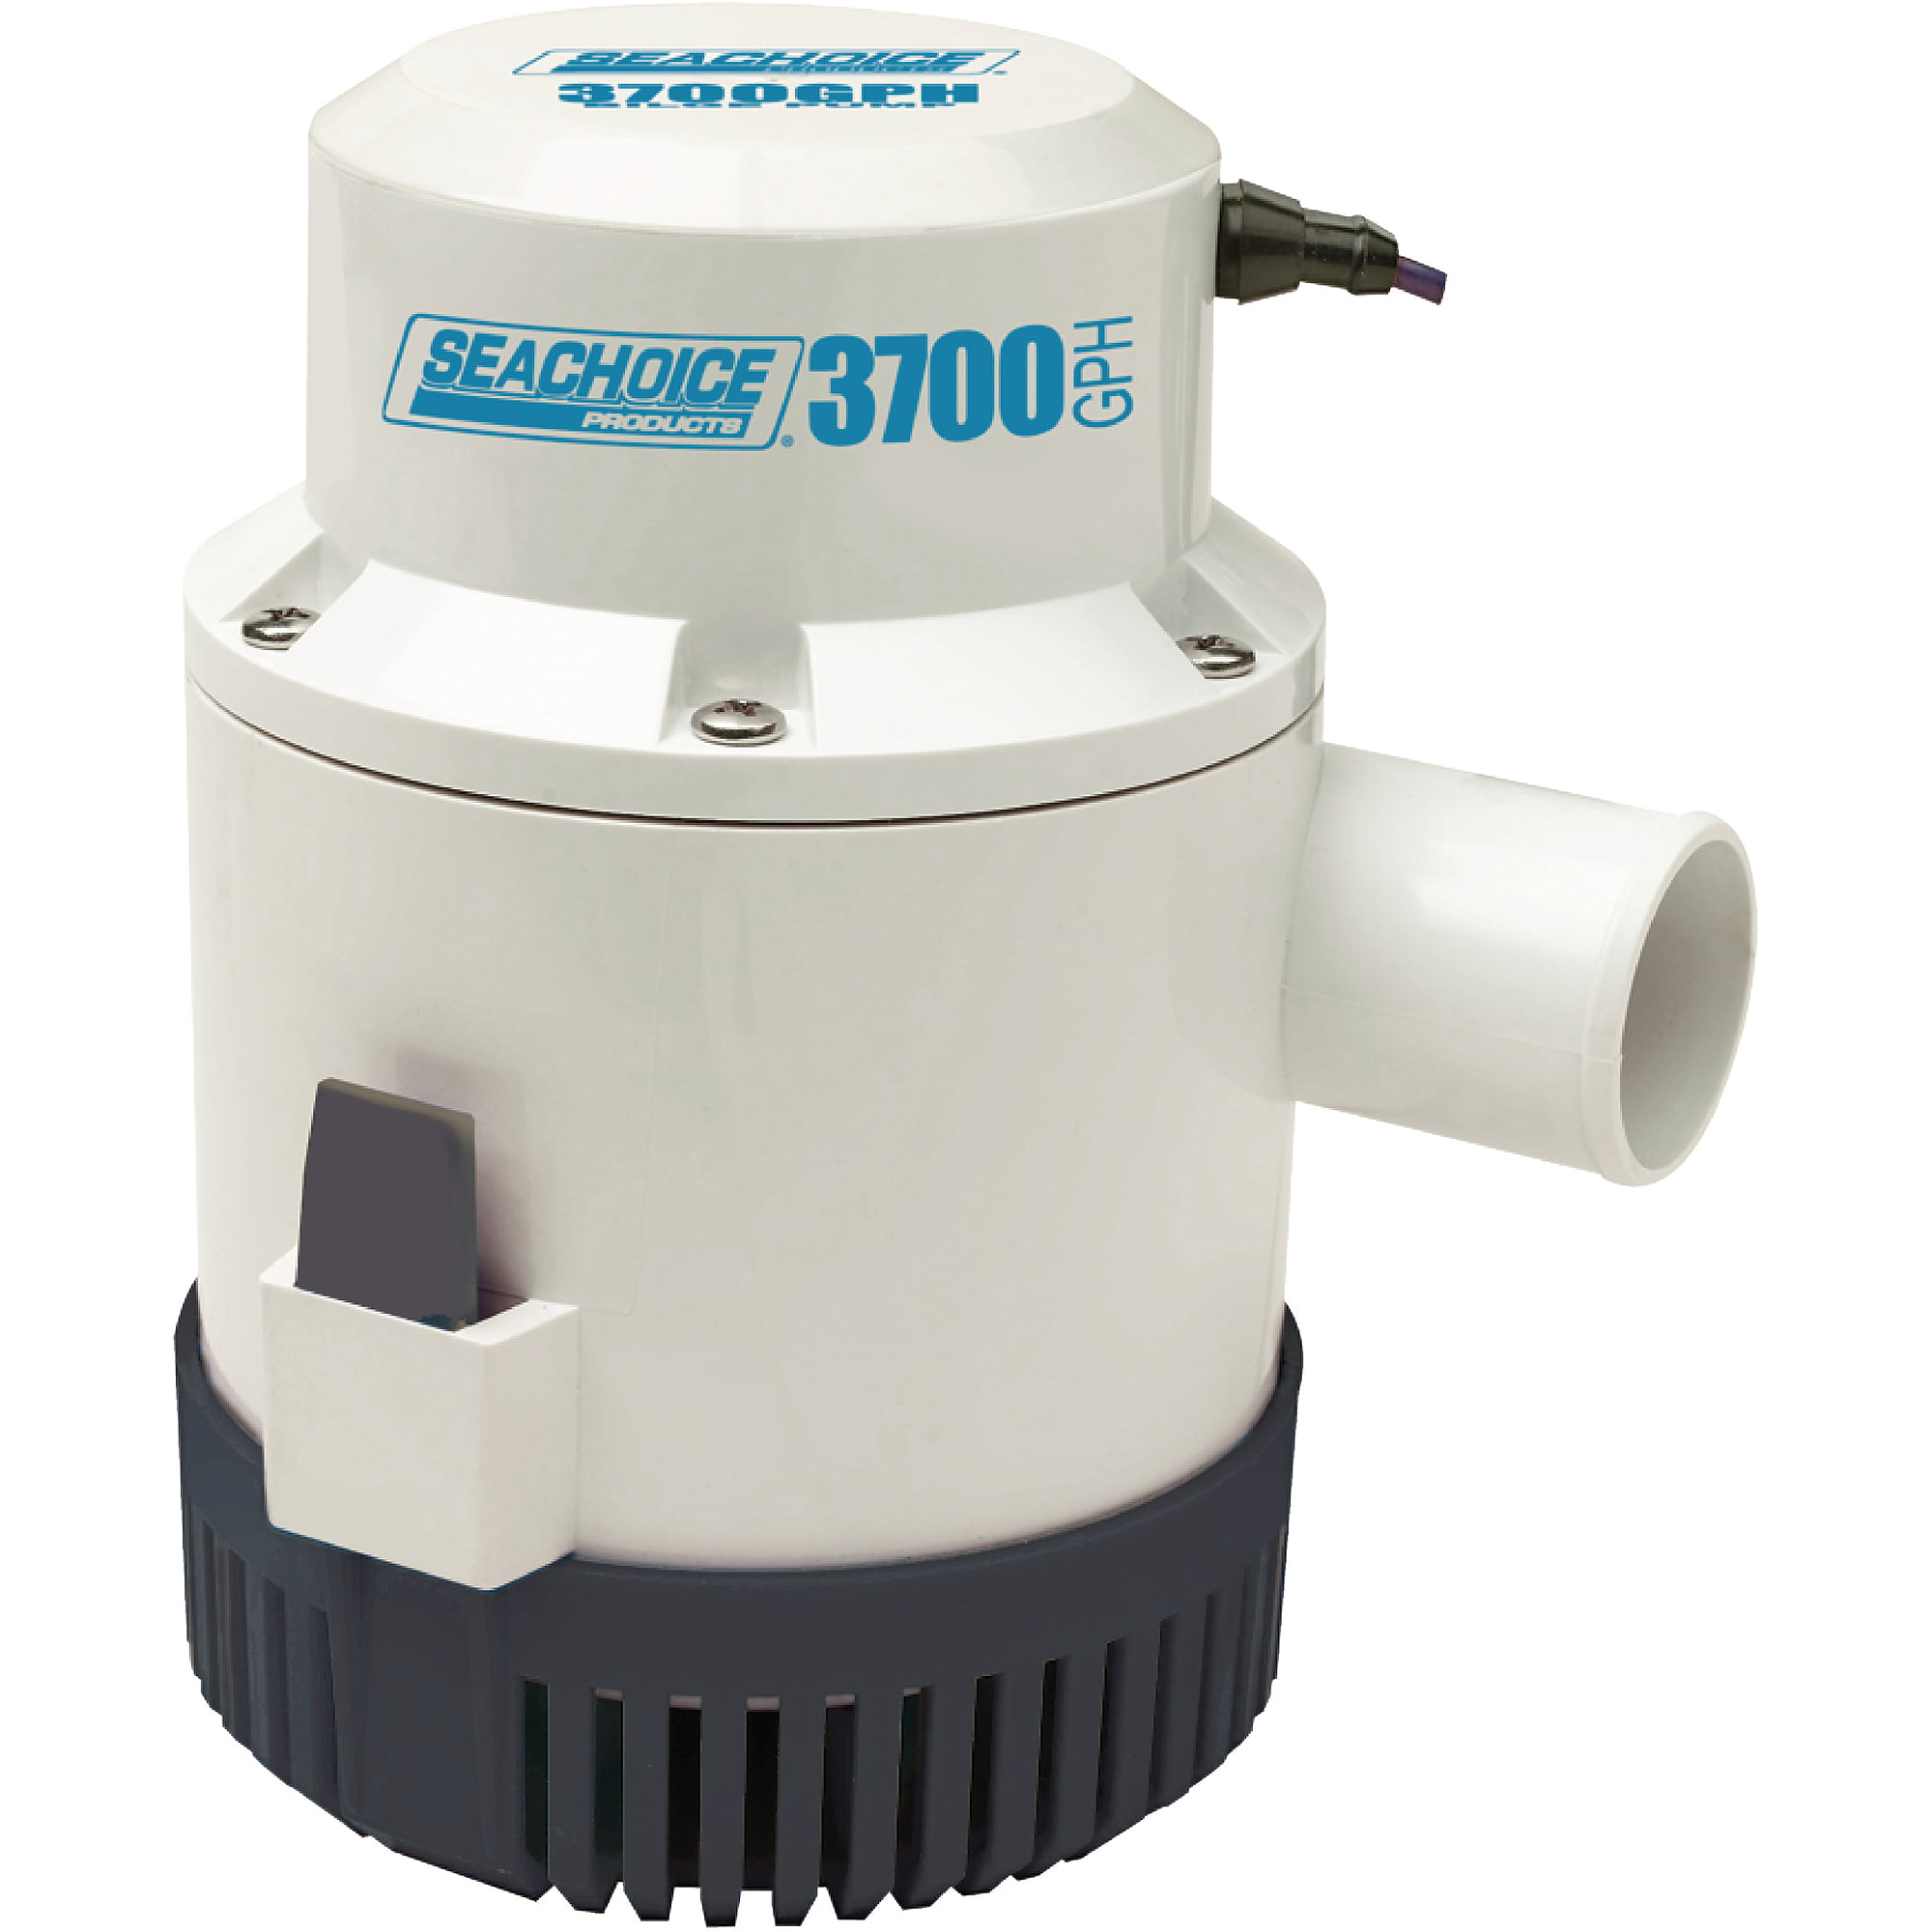 "Click here to buy Seachoice 12V Submersible Bilge Pump 3700 GPH with 1-1 2"" Ports by Seachoice Products."